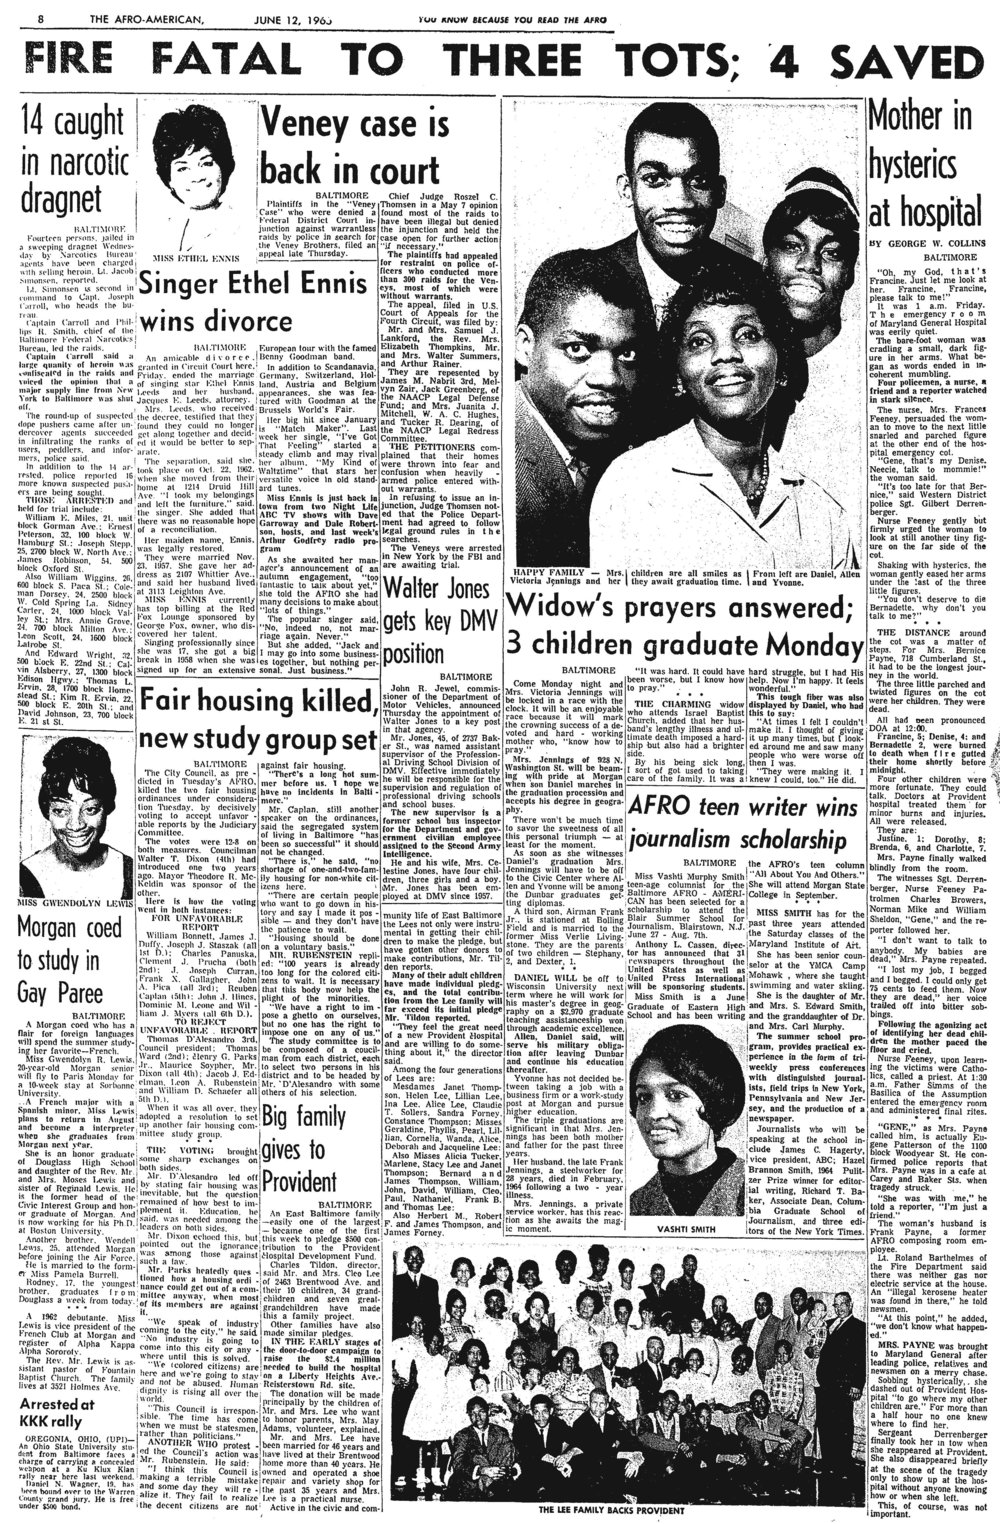 1965-6-12-AFRO_teen_writer_wins_journali.jpg